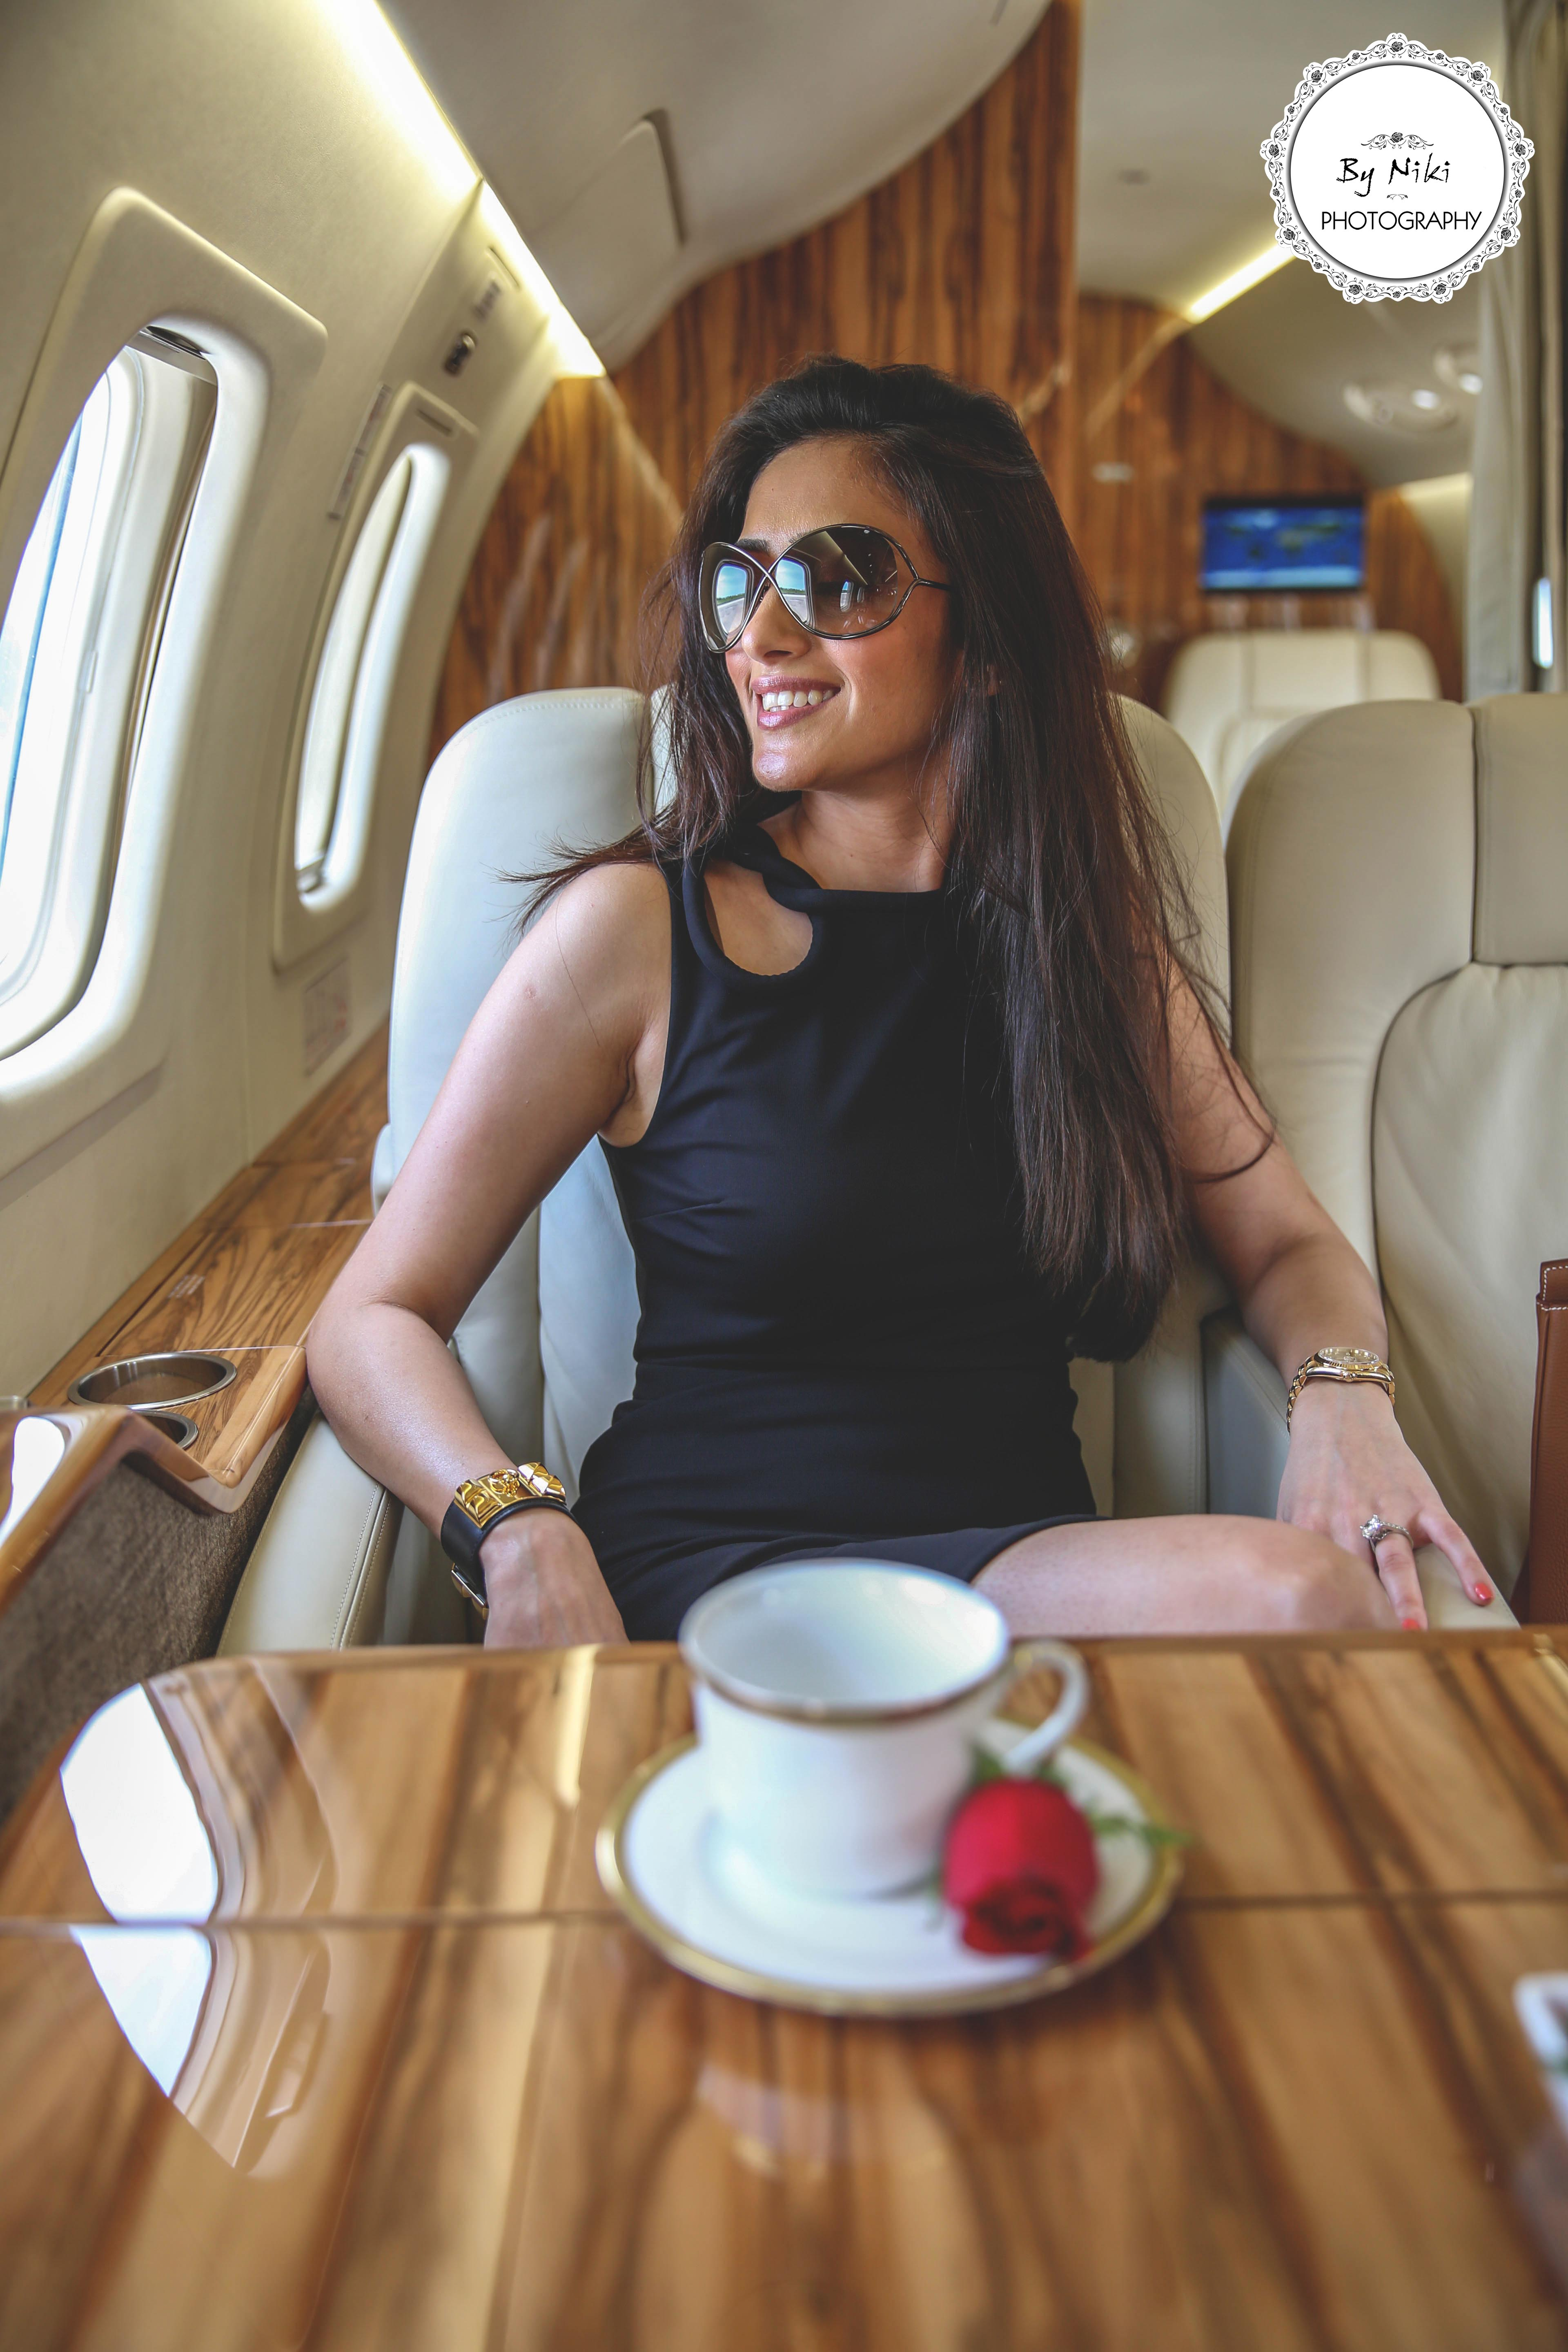 Luxury Life At 30 000 Feet By Niki Photography